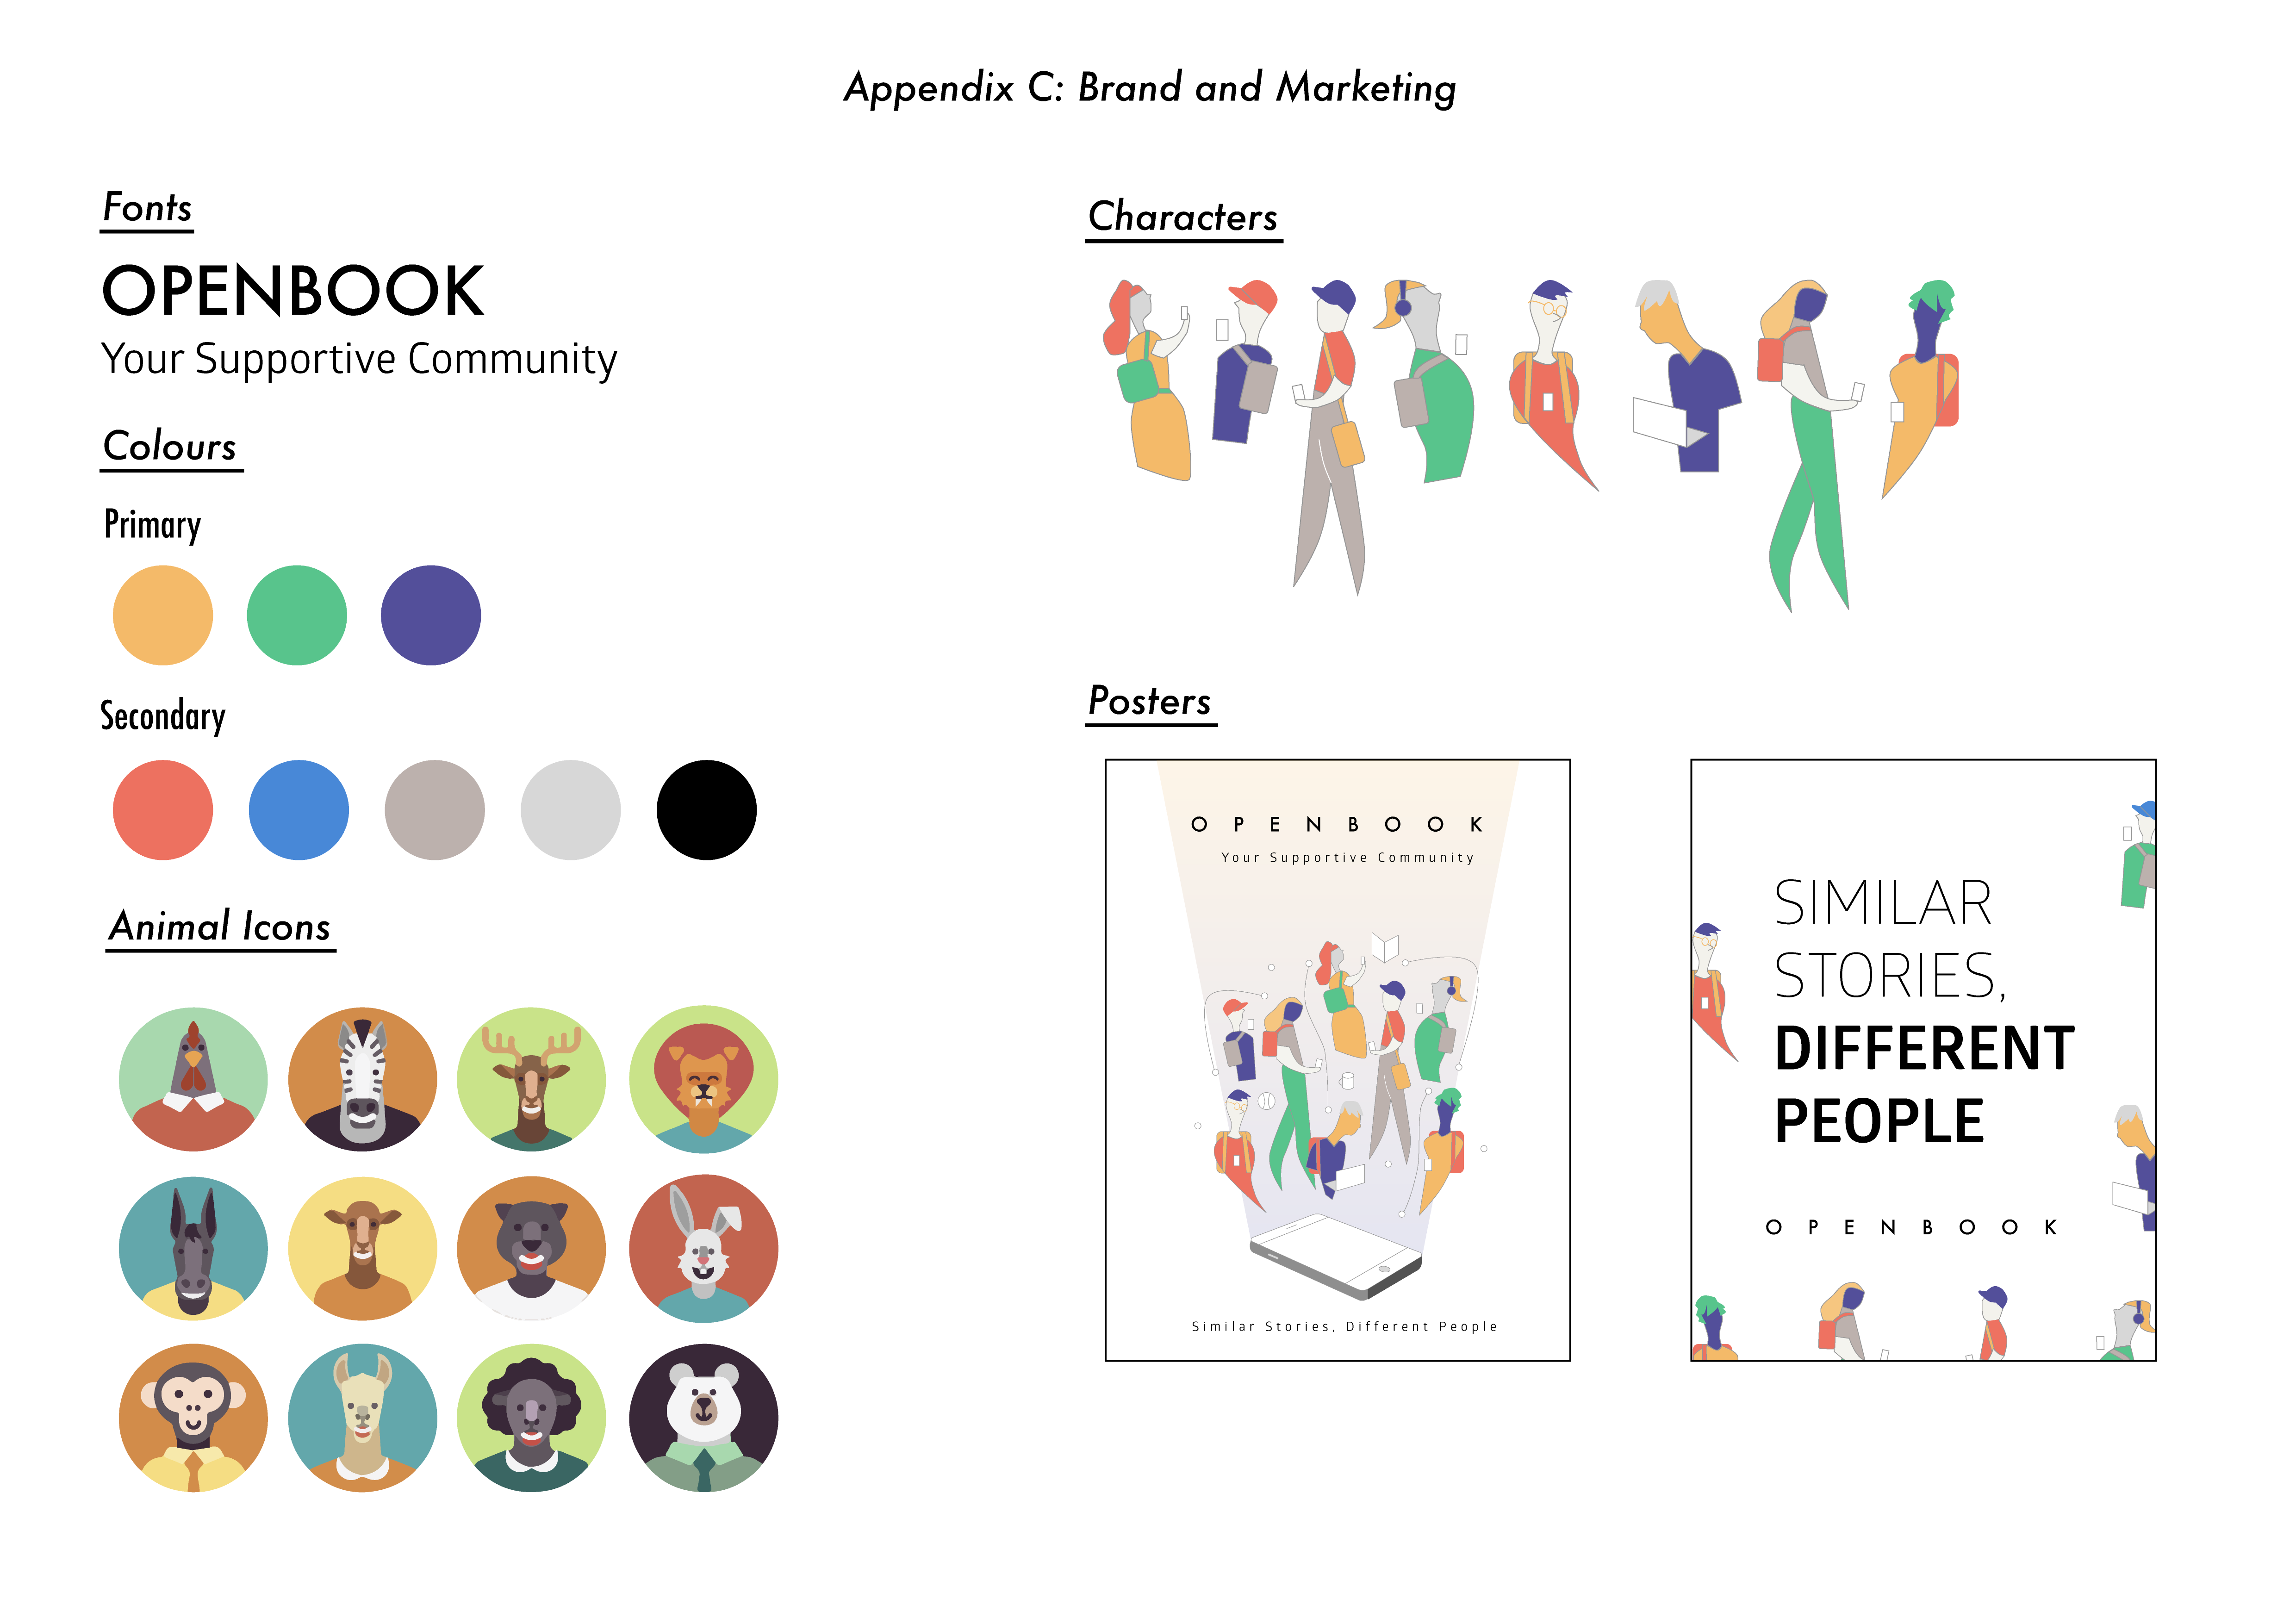 Openbook: Your Supportive Community